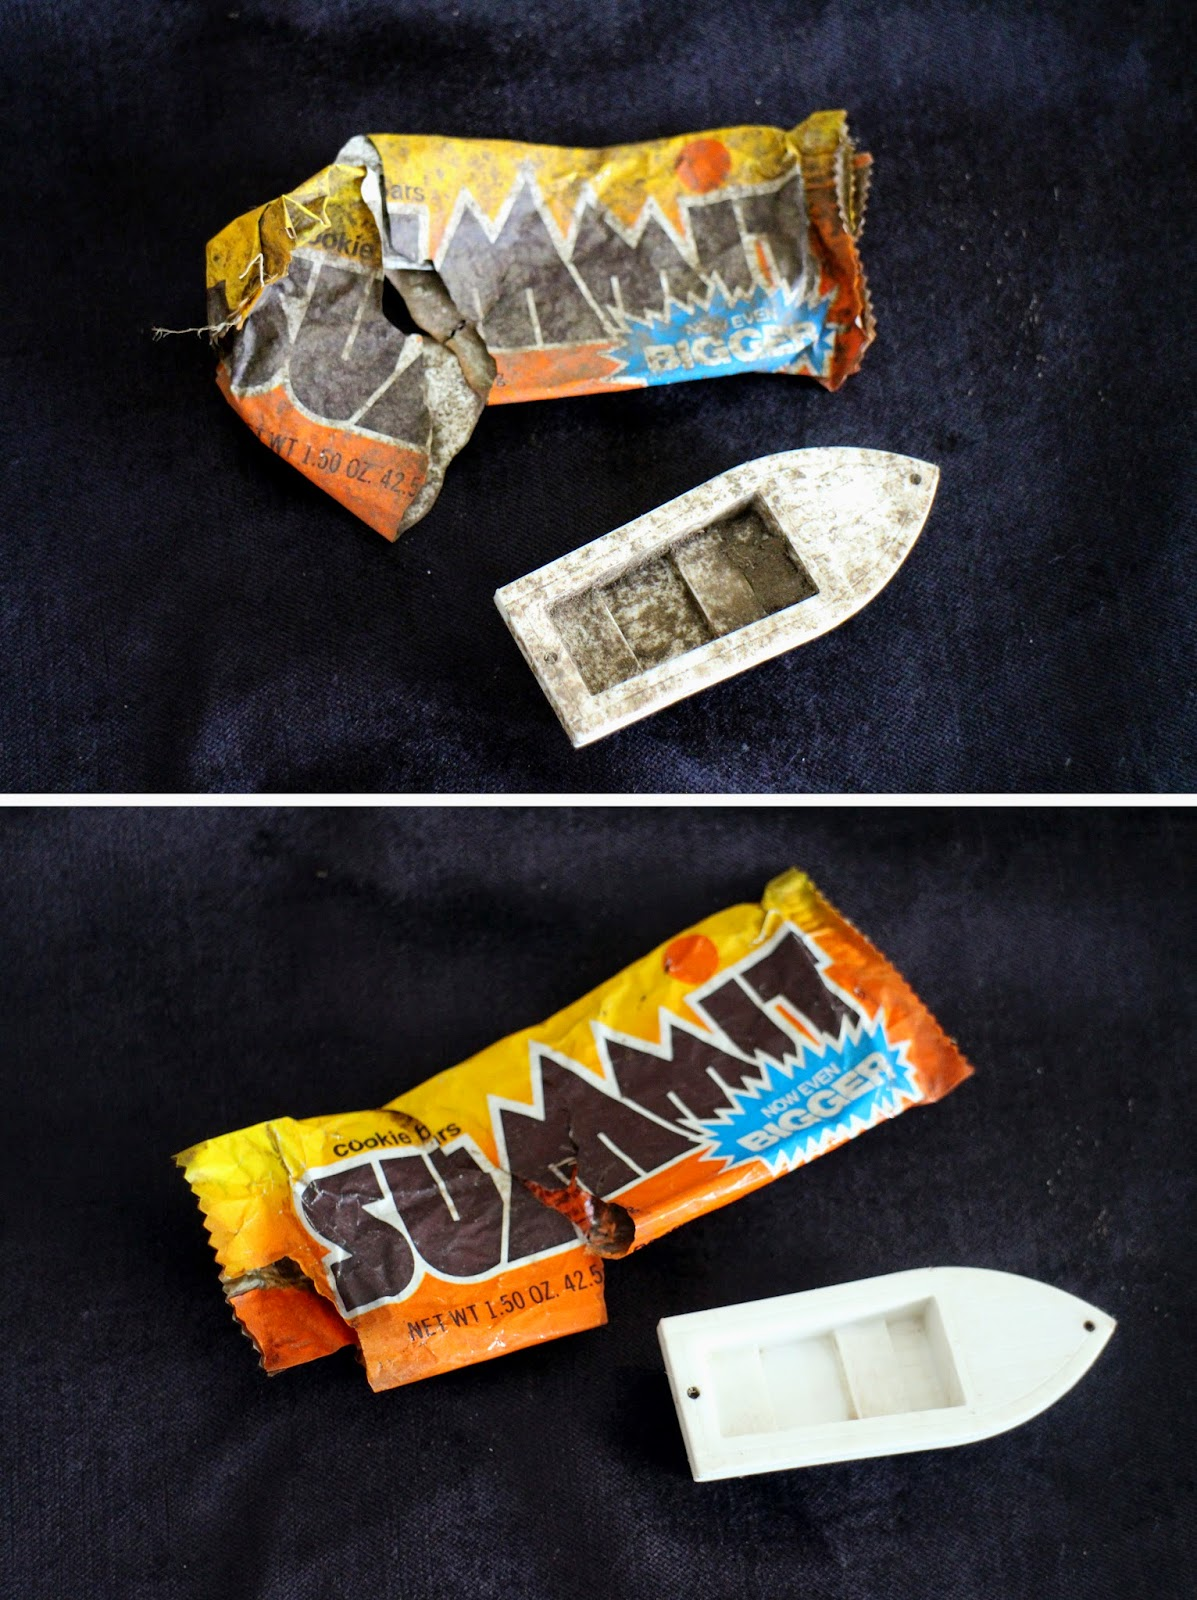 Summit Bar wrapper, orange and yellow, buried plastic candy wrapper after 30 years, found buried toy boat, trash treasure, child's discarded things found years later while digging a hole